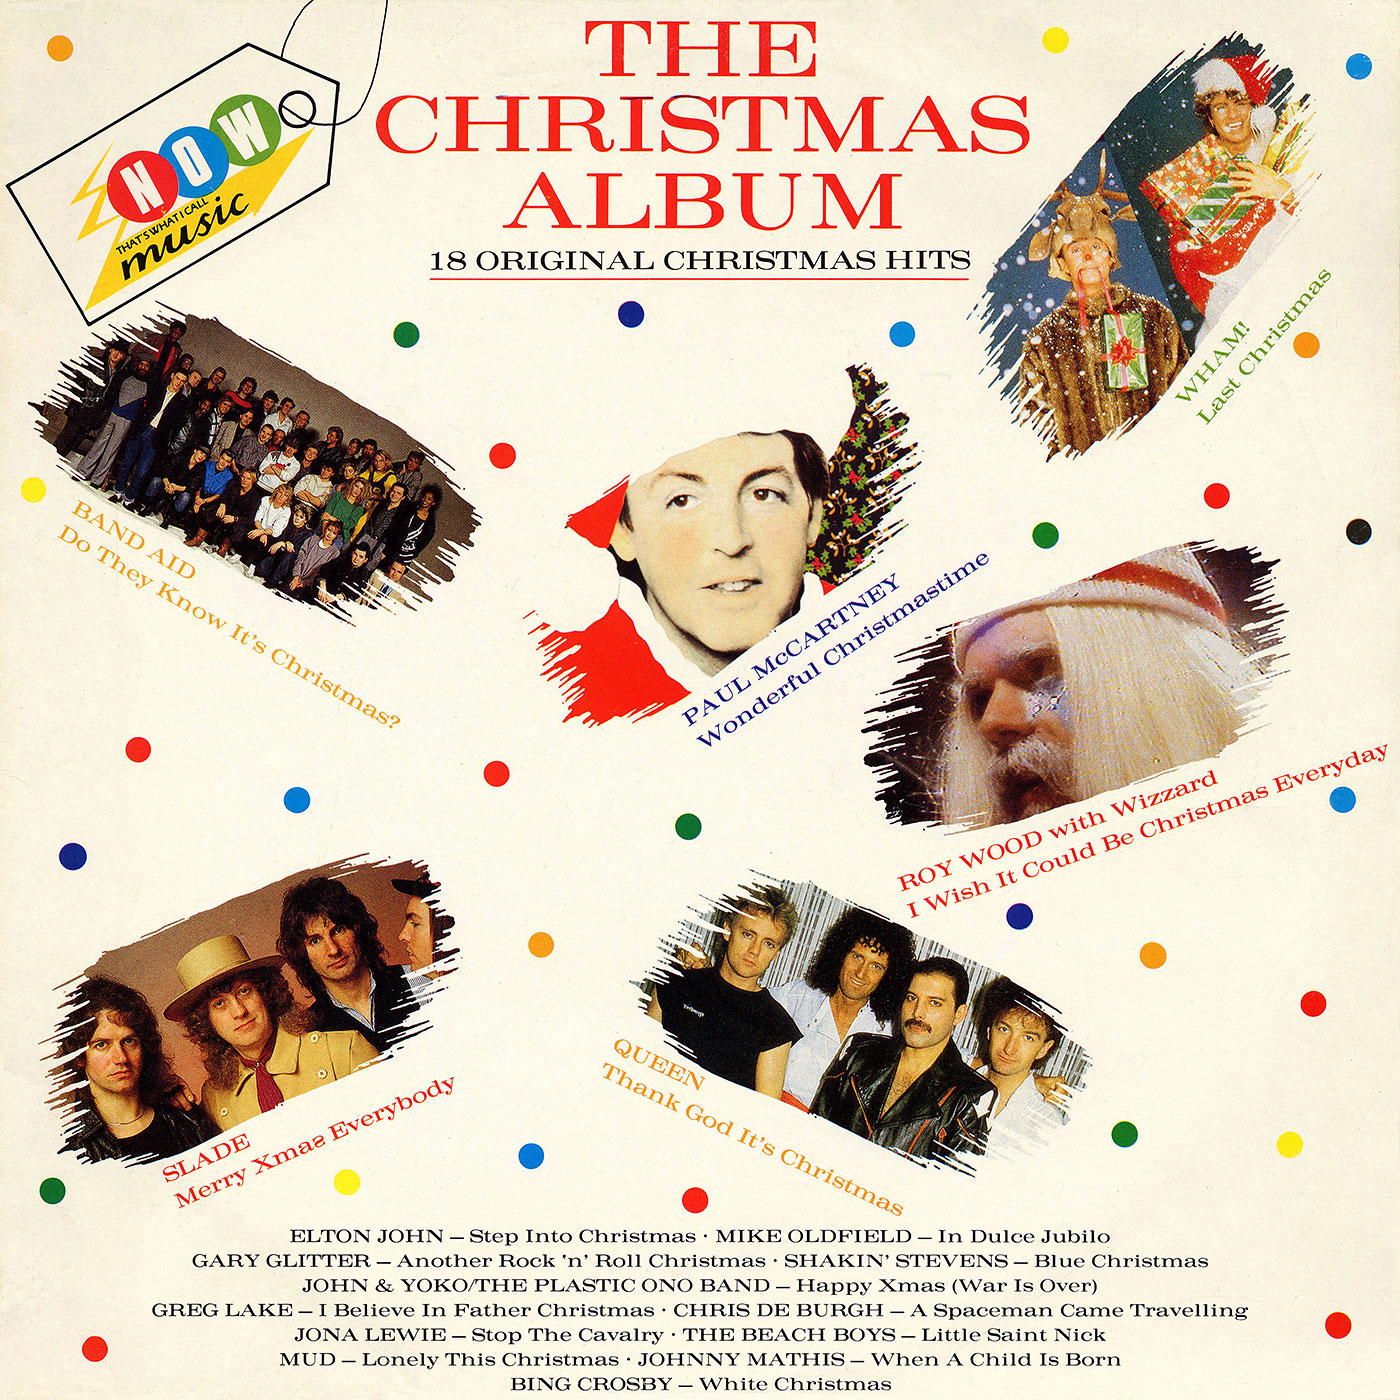 Various Artists - NOW – THE CHRISTMAS ALBUM by EMI/Virgin label (UK)